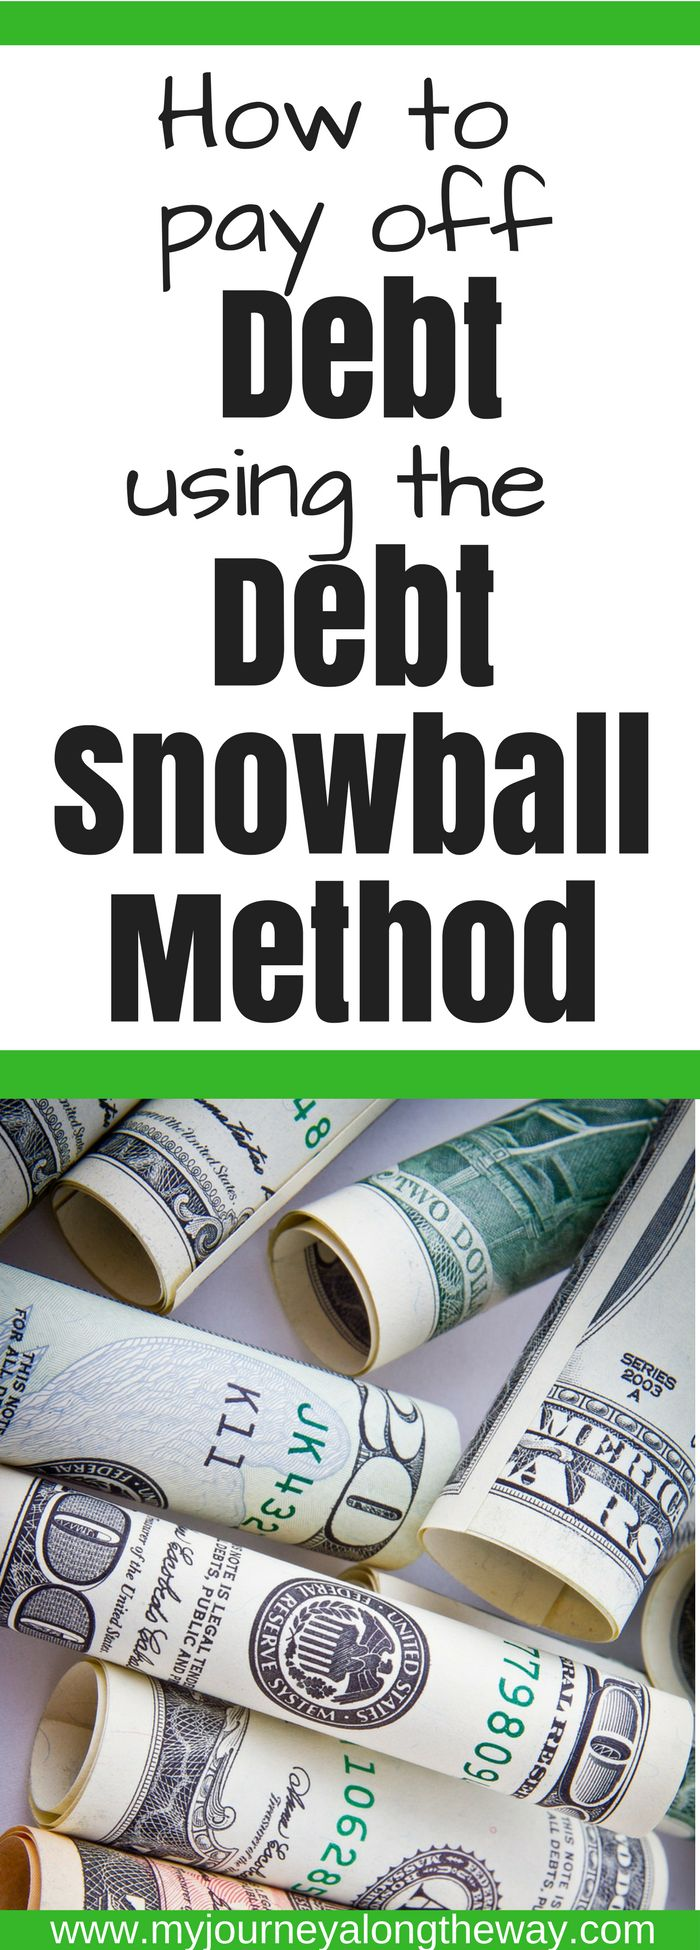 If you are looking to pay off debt, the debt snowball method is the best method to help you get that ball rolling. Join the debt snowball challenge today! #debt #budget